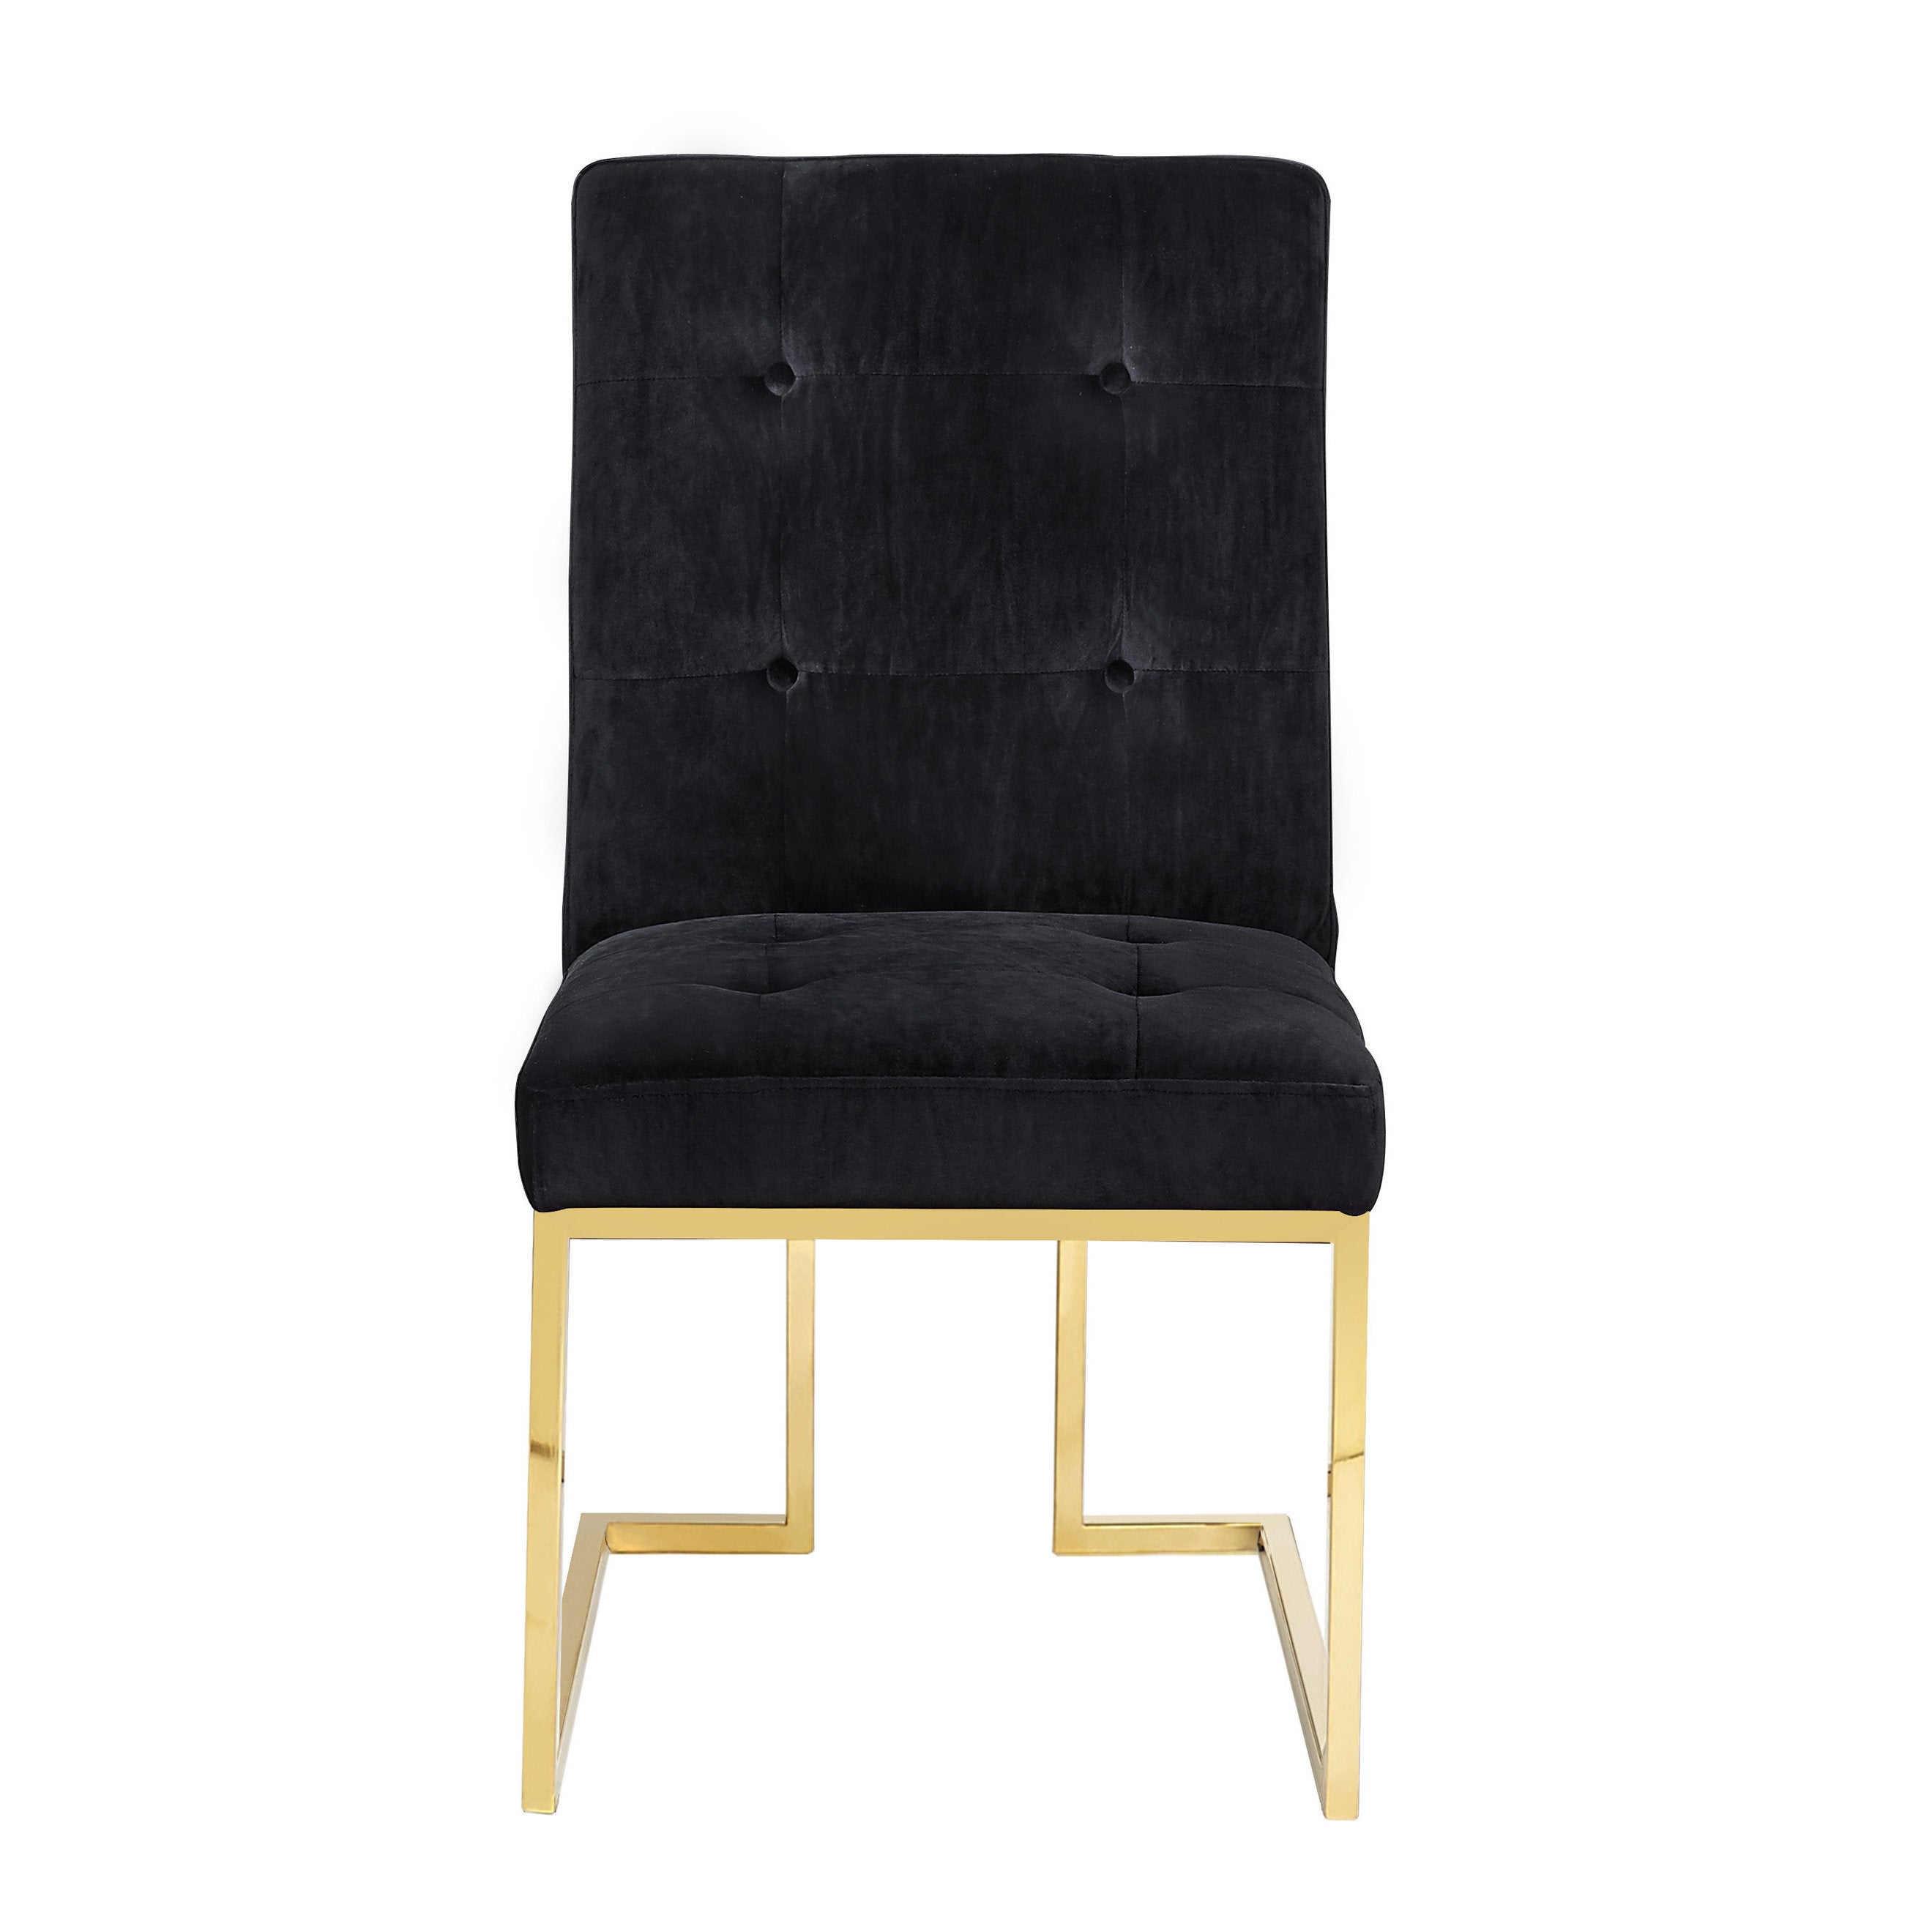 Genial Shop Akiko Black Velvet Chairs (Set Of 2)   Free Shipping Today    Overstock.com   15871159